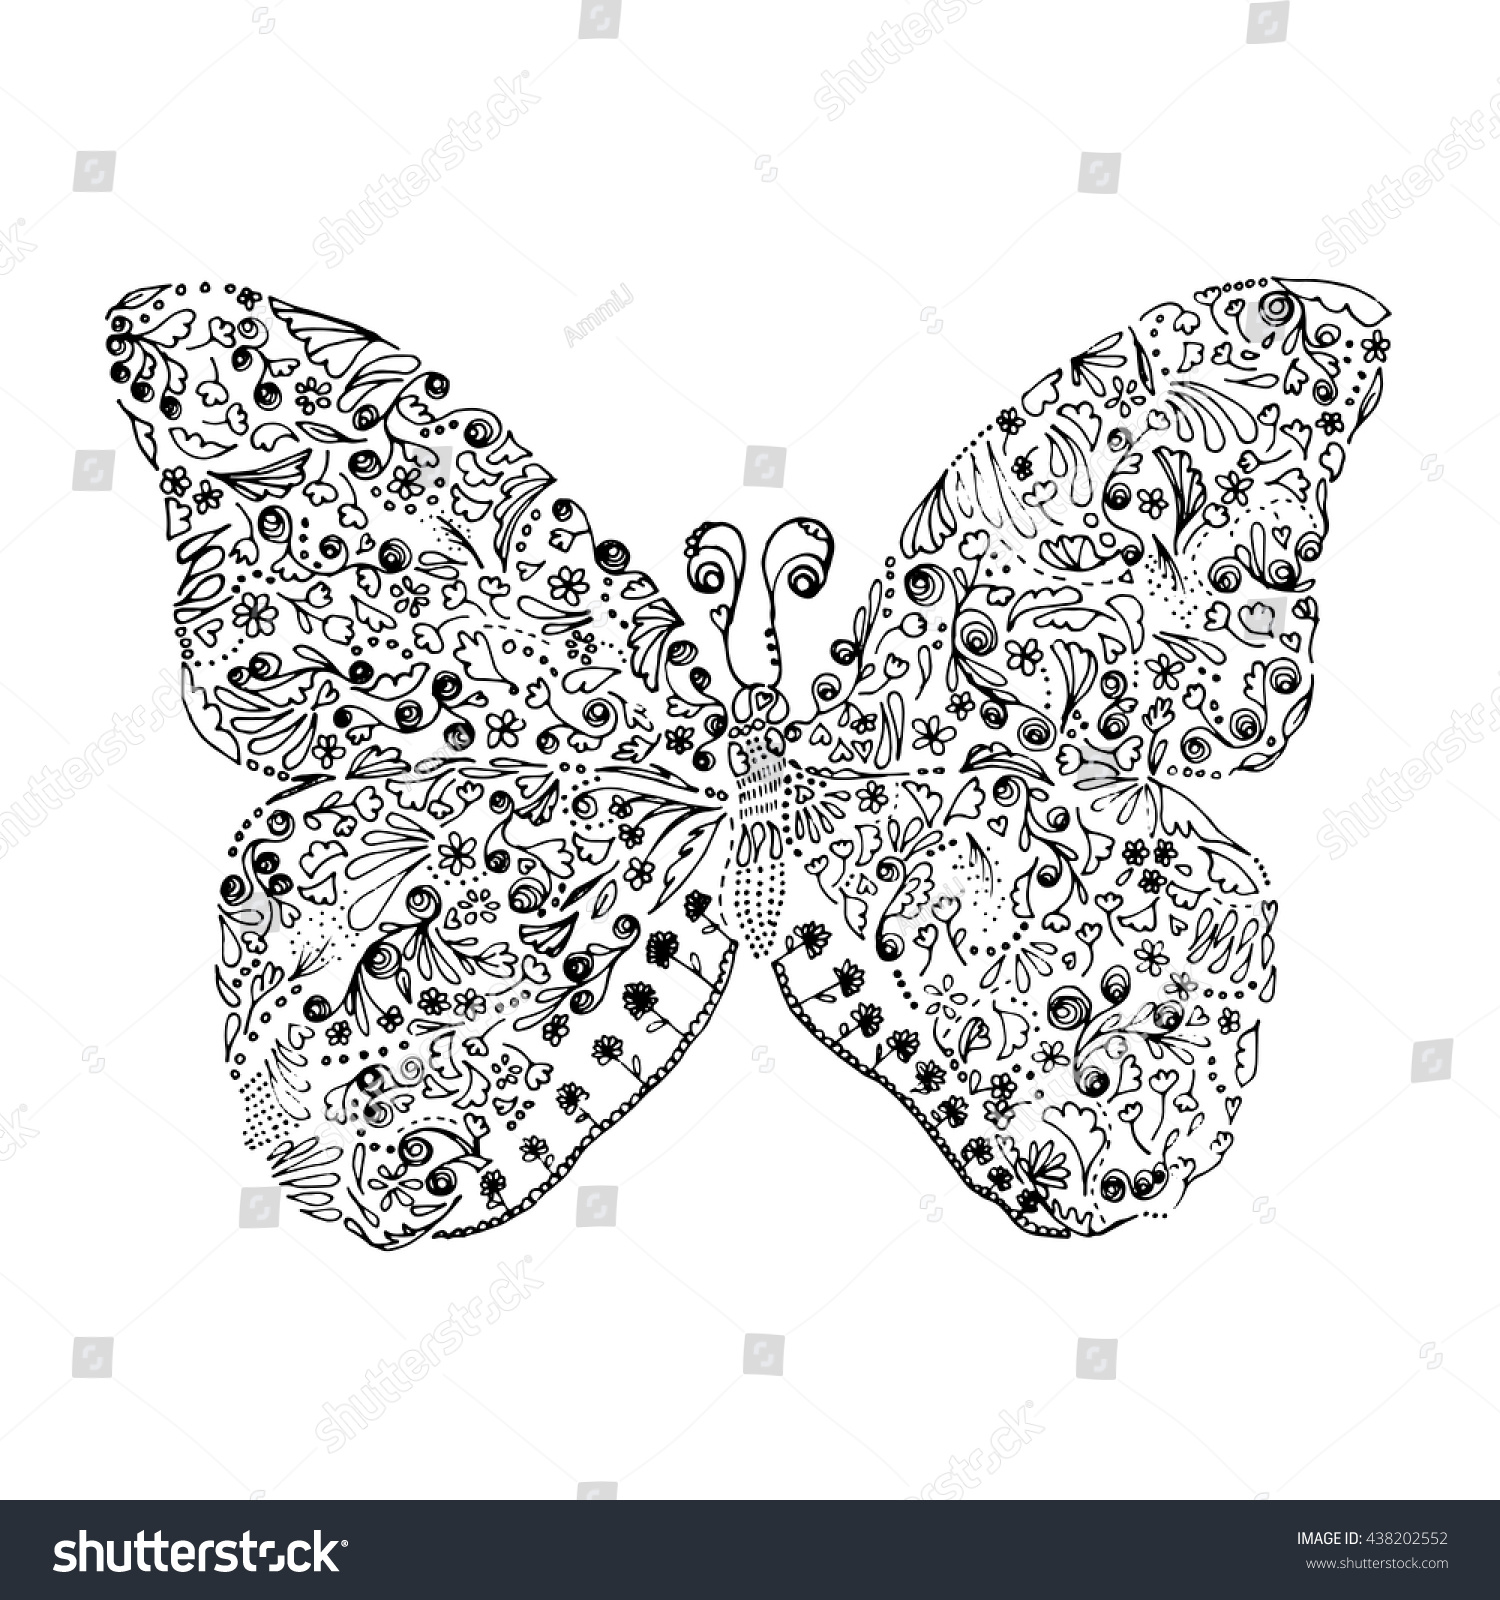 royalty free abstract butterfly line drawing black u2026 438202552